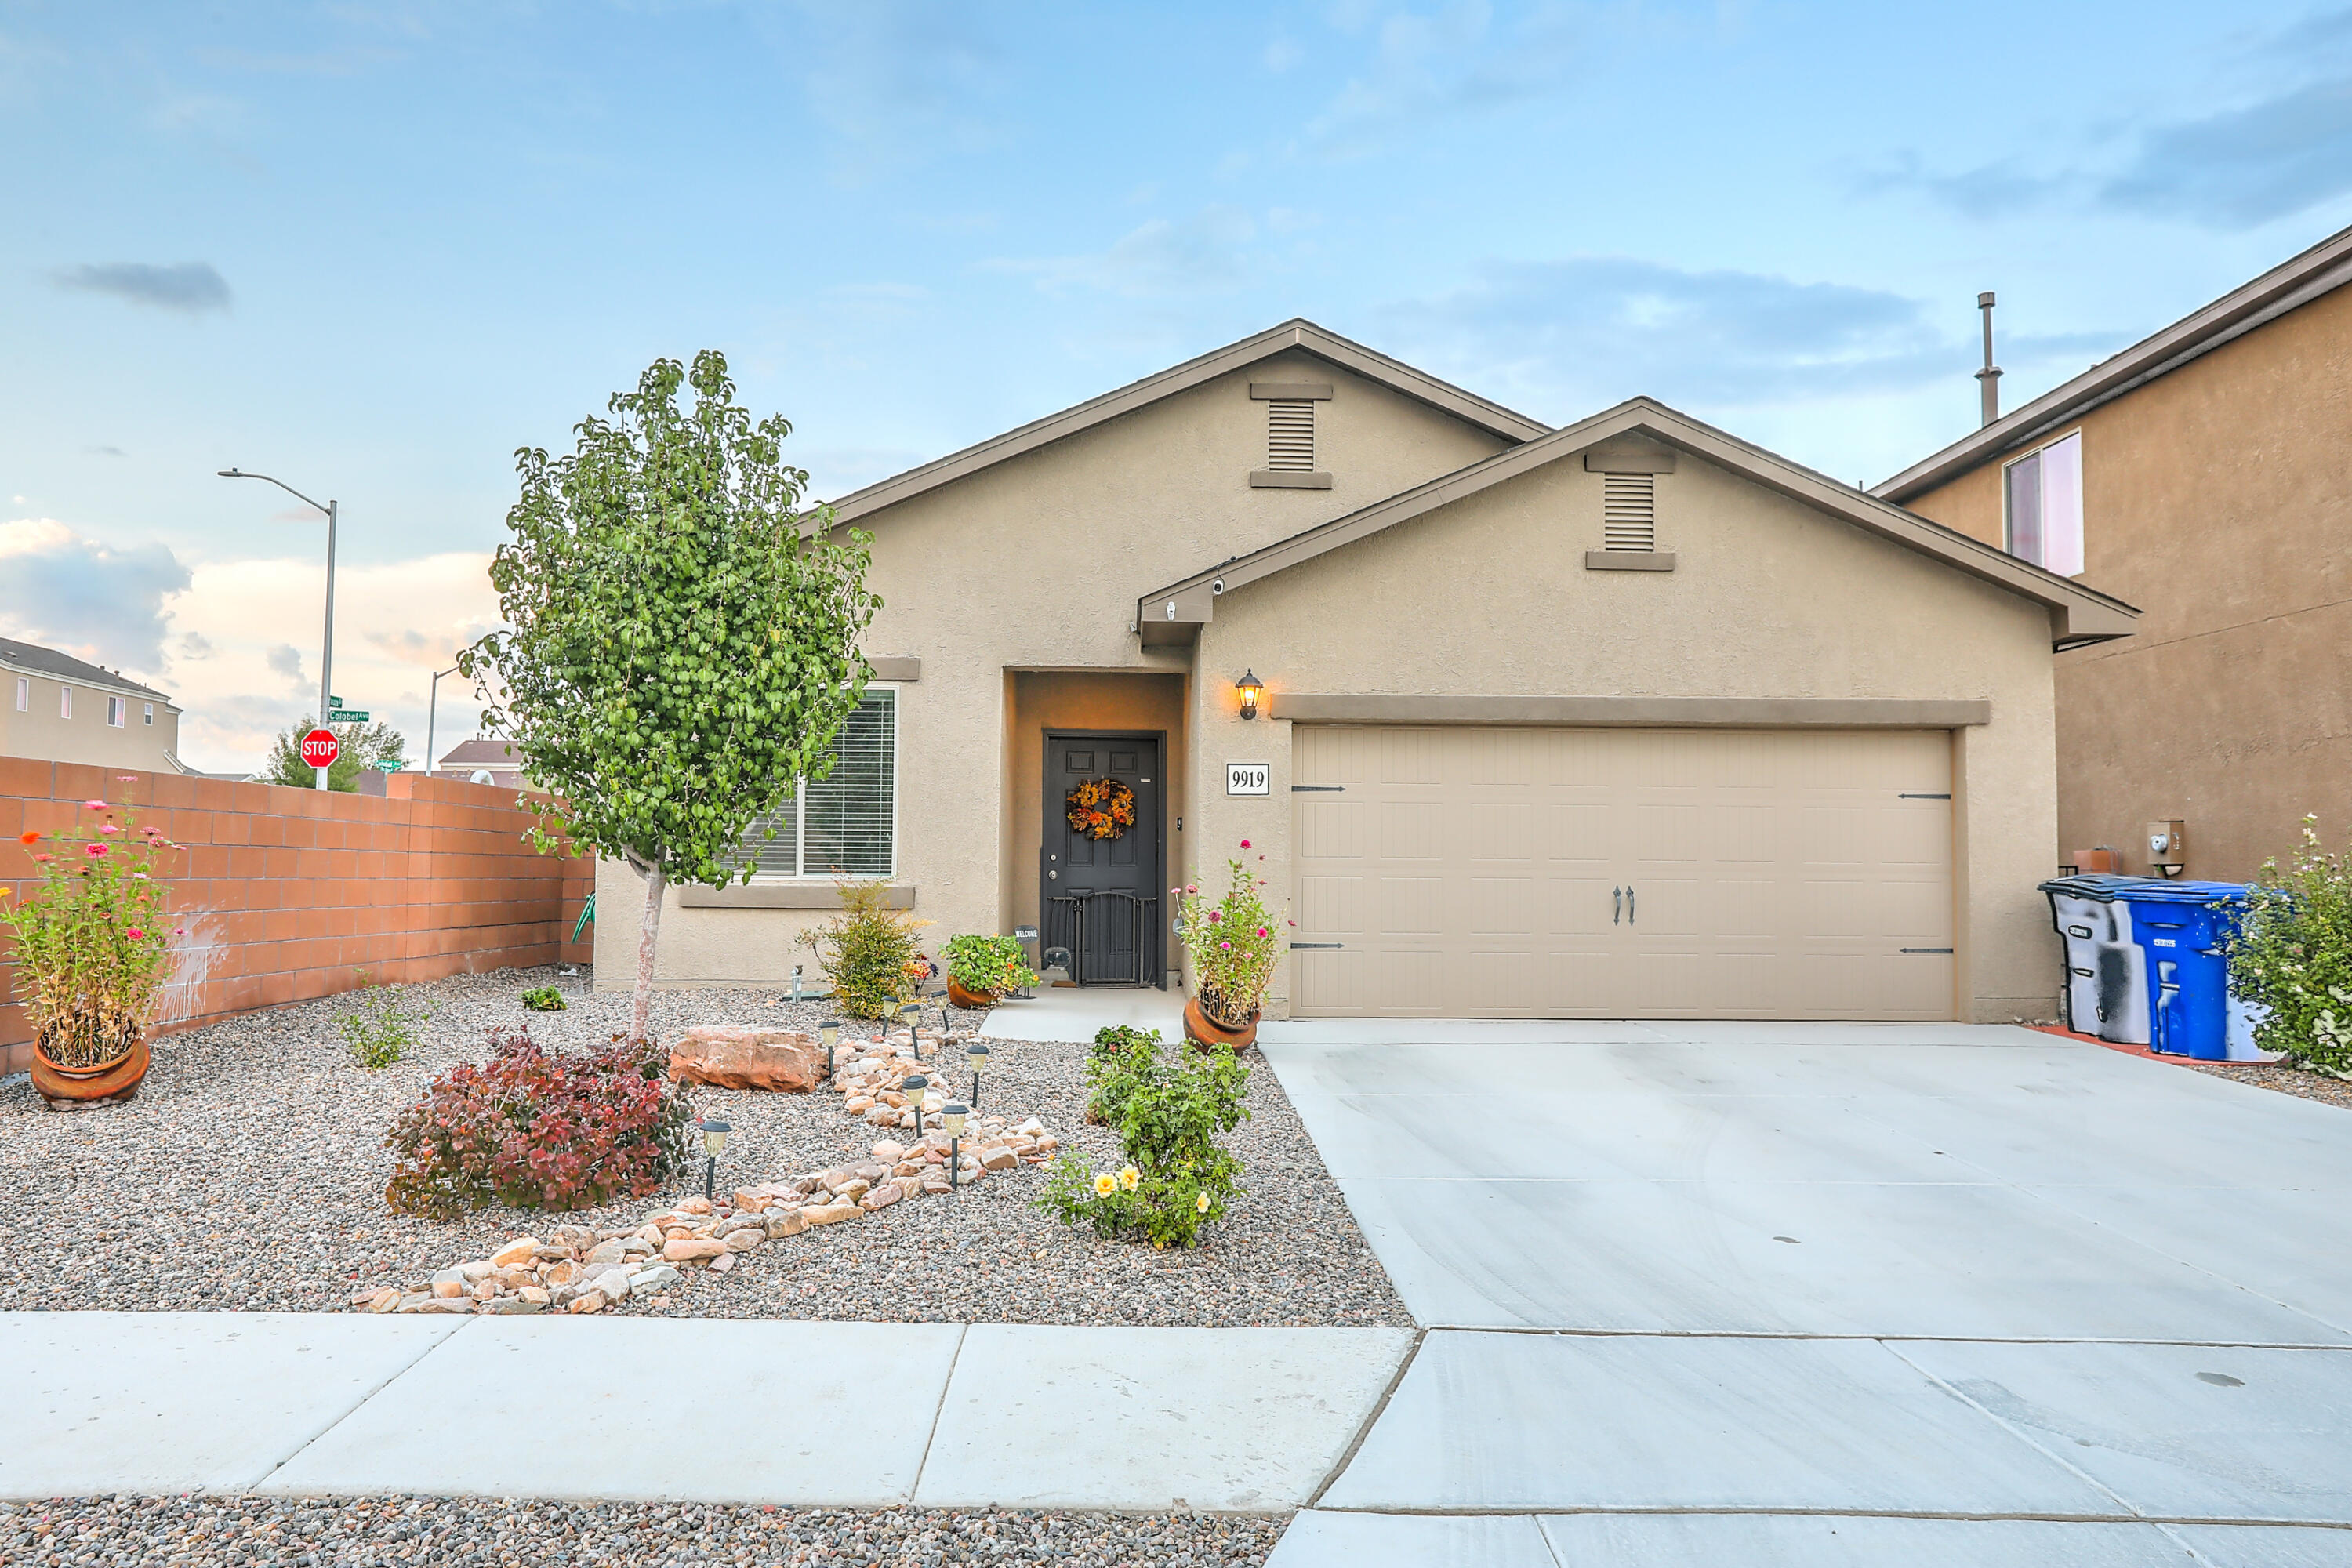 A wonderfully remodeled and maintained home. Just 3 years old. Corner Lot. Tile throughout. Fully Landscaped with a 3-zone drip system. Over $45k in upgrades. Close to parks and easy access to major roads.